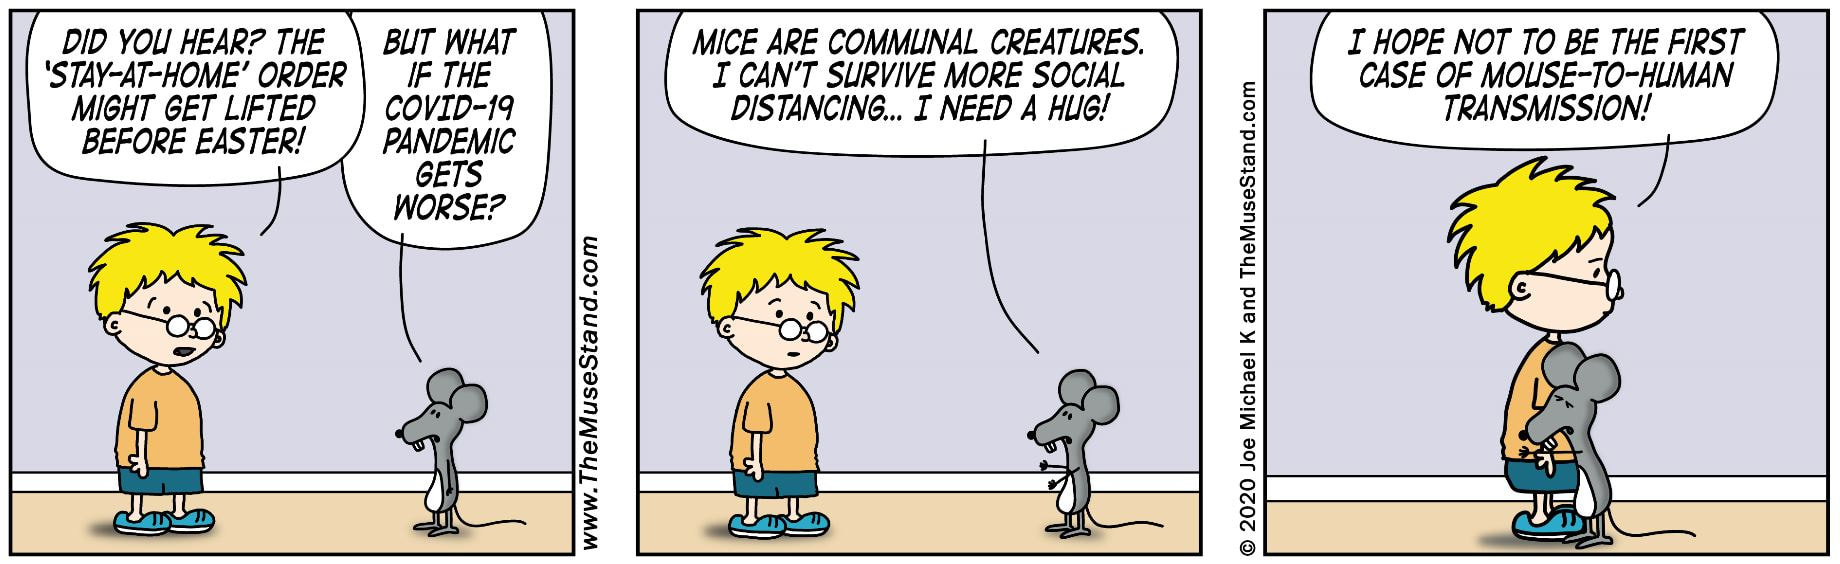 Mice Are Communal Creatures - Think Shop Comics